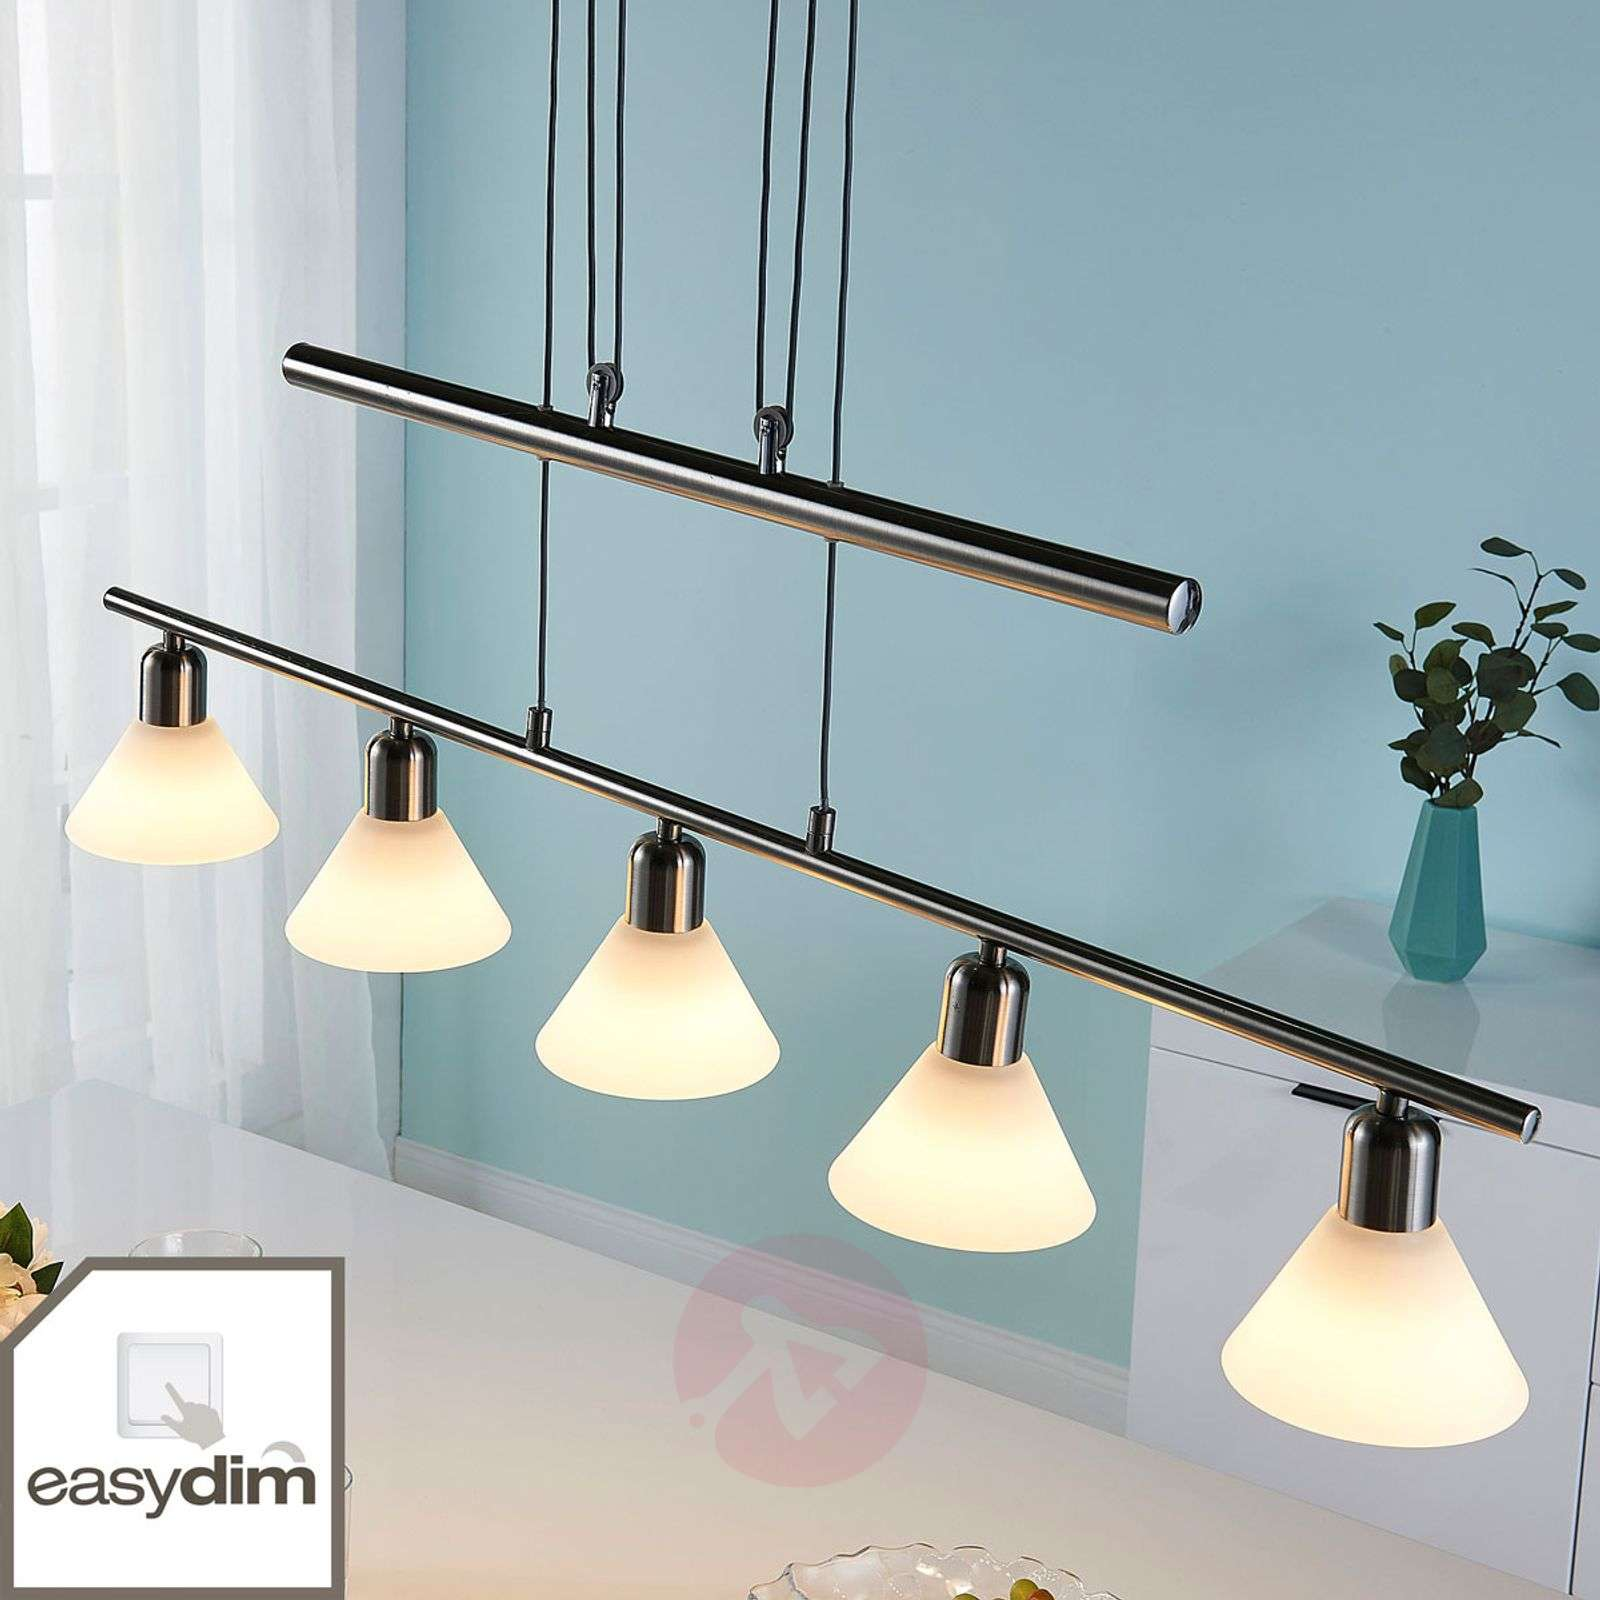 LED hanging lamp Eleasa dimmable by a switch-9621388-02